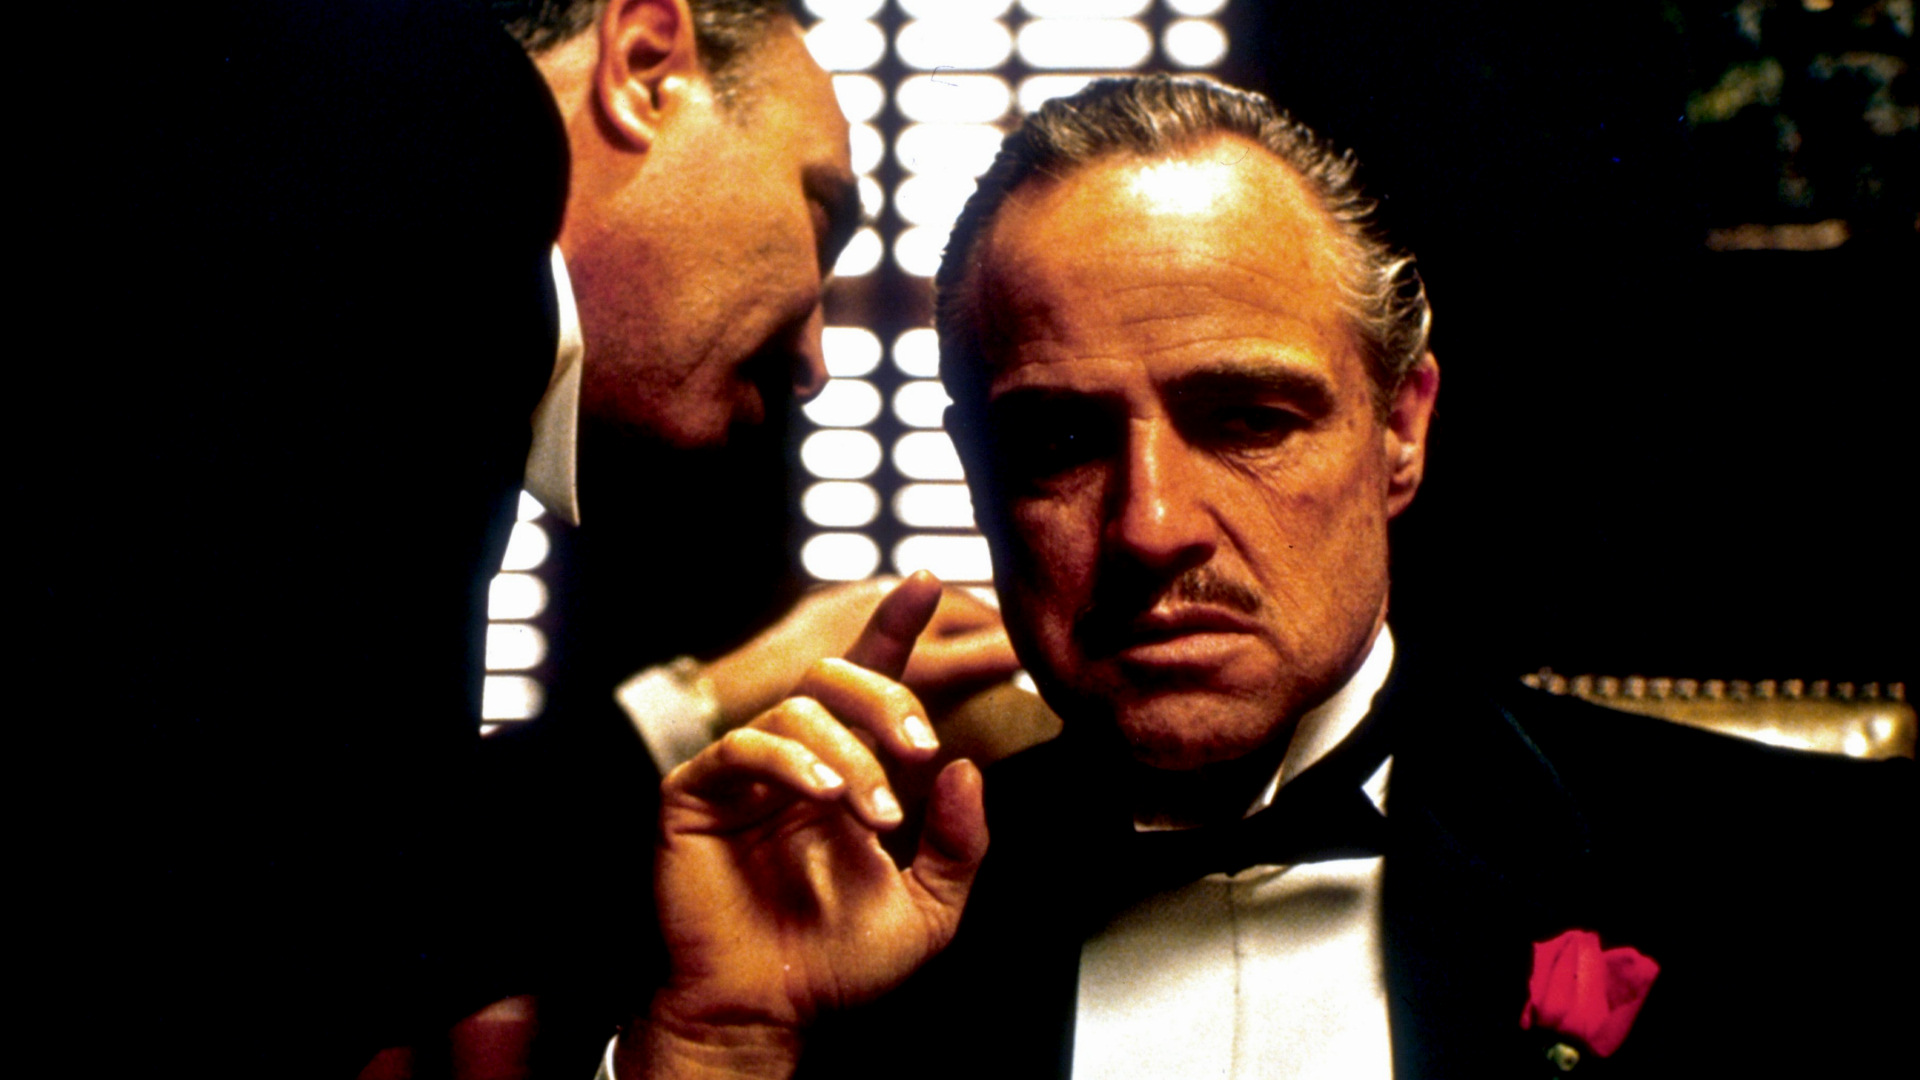 Mafia The Godfather Vito Corleone wallpaper 1920x1080 62533 1920x1080